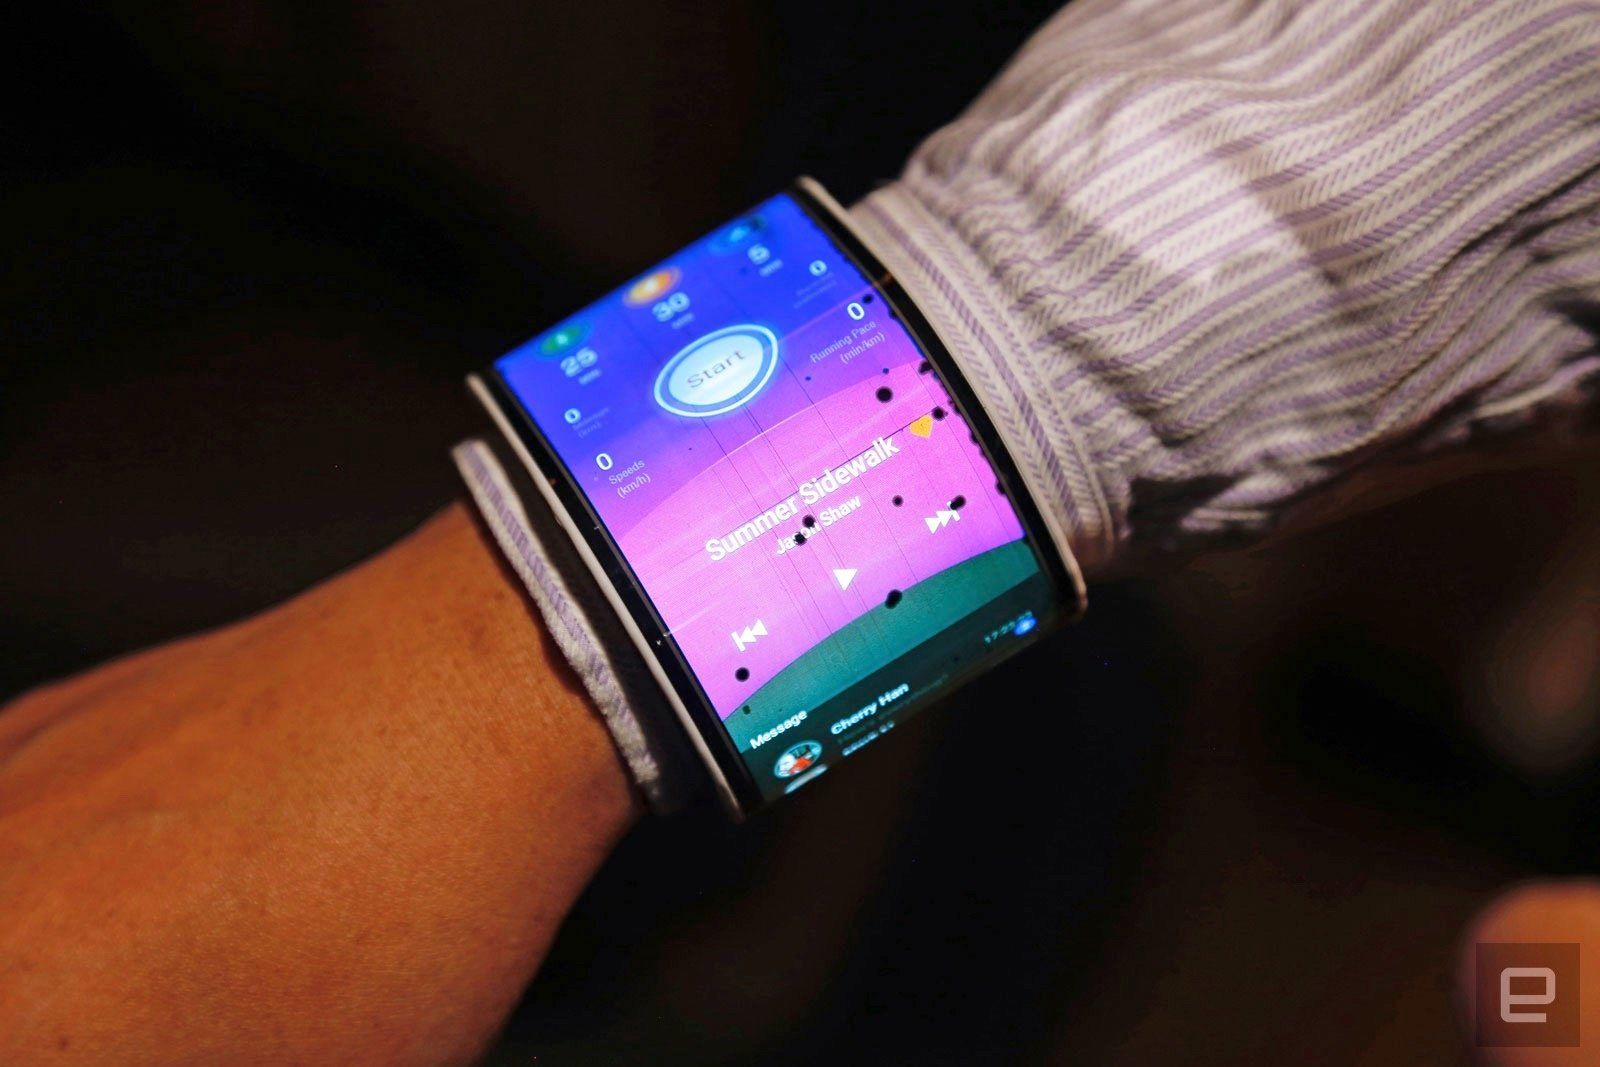 Concept: Make out Smartwatch Smartphone